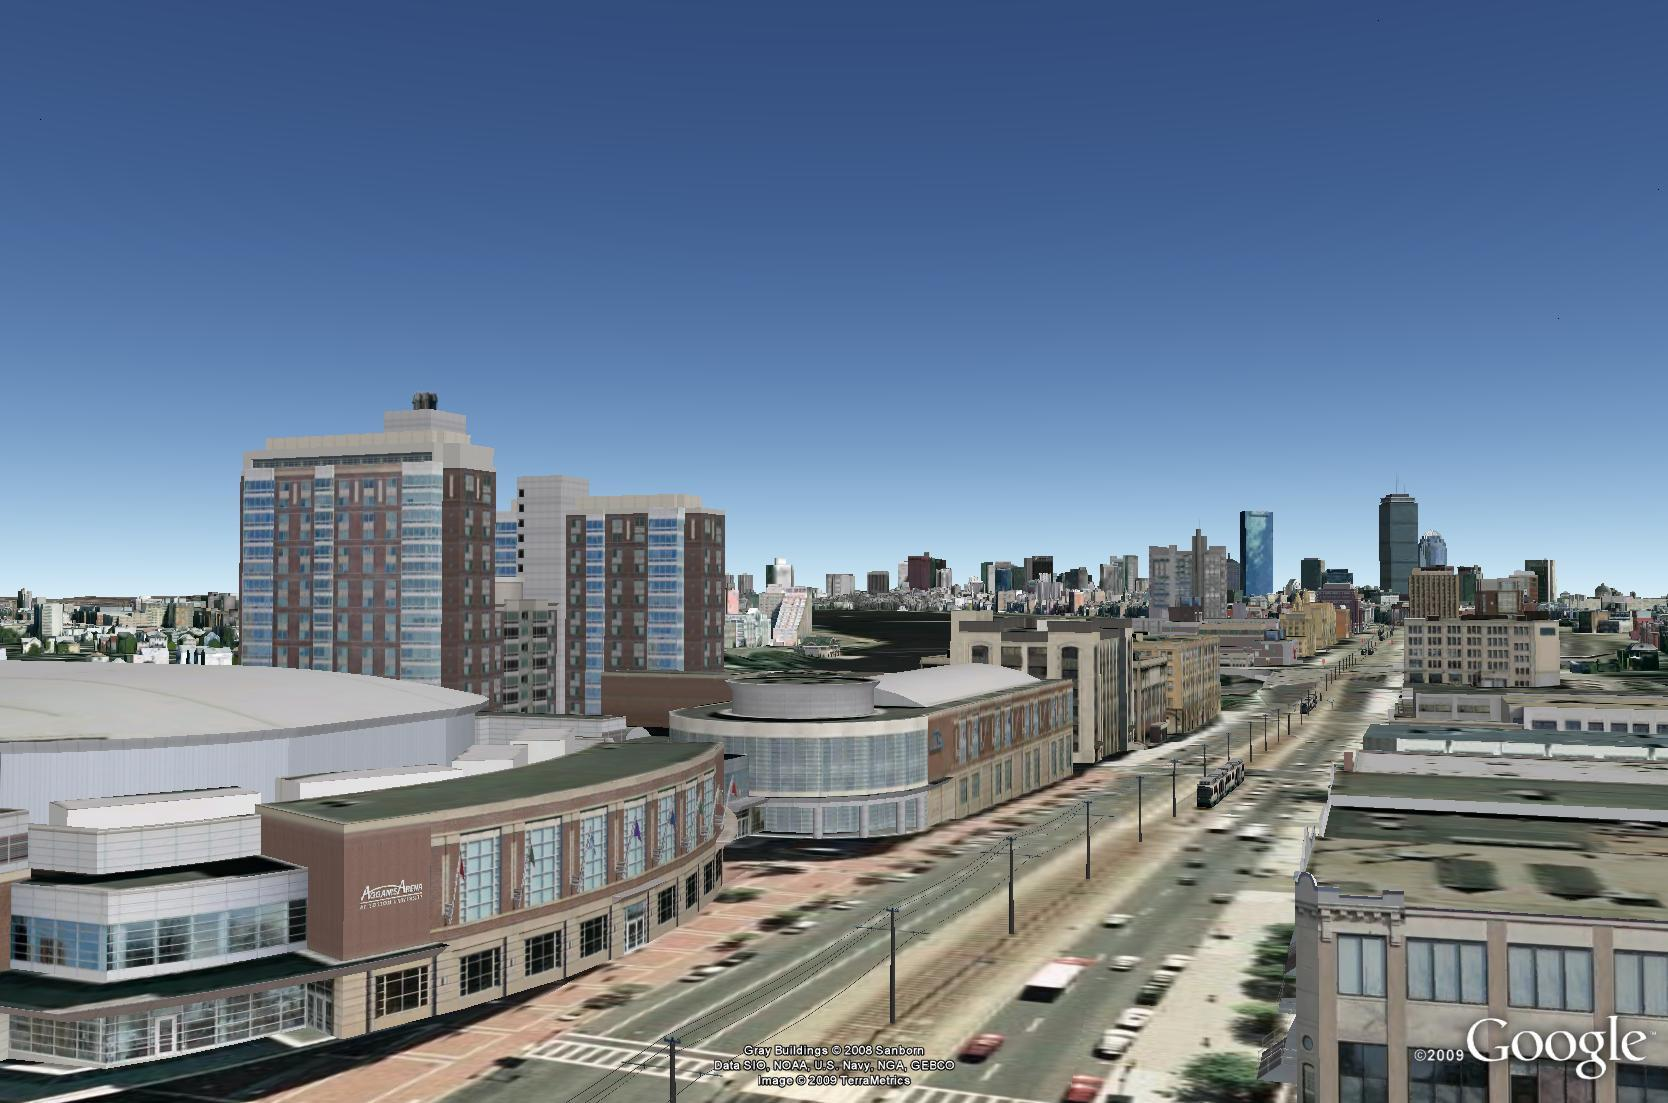 Concept3d Completes 3d Modeling And Google Earth Tm